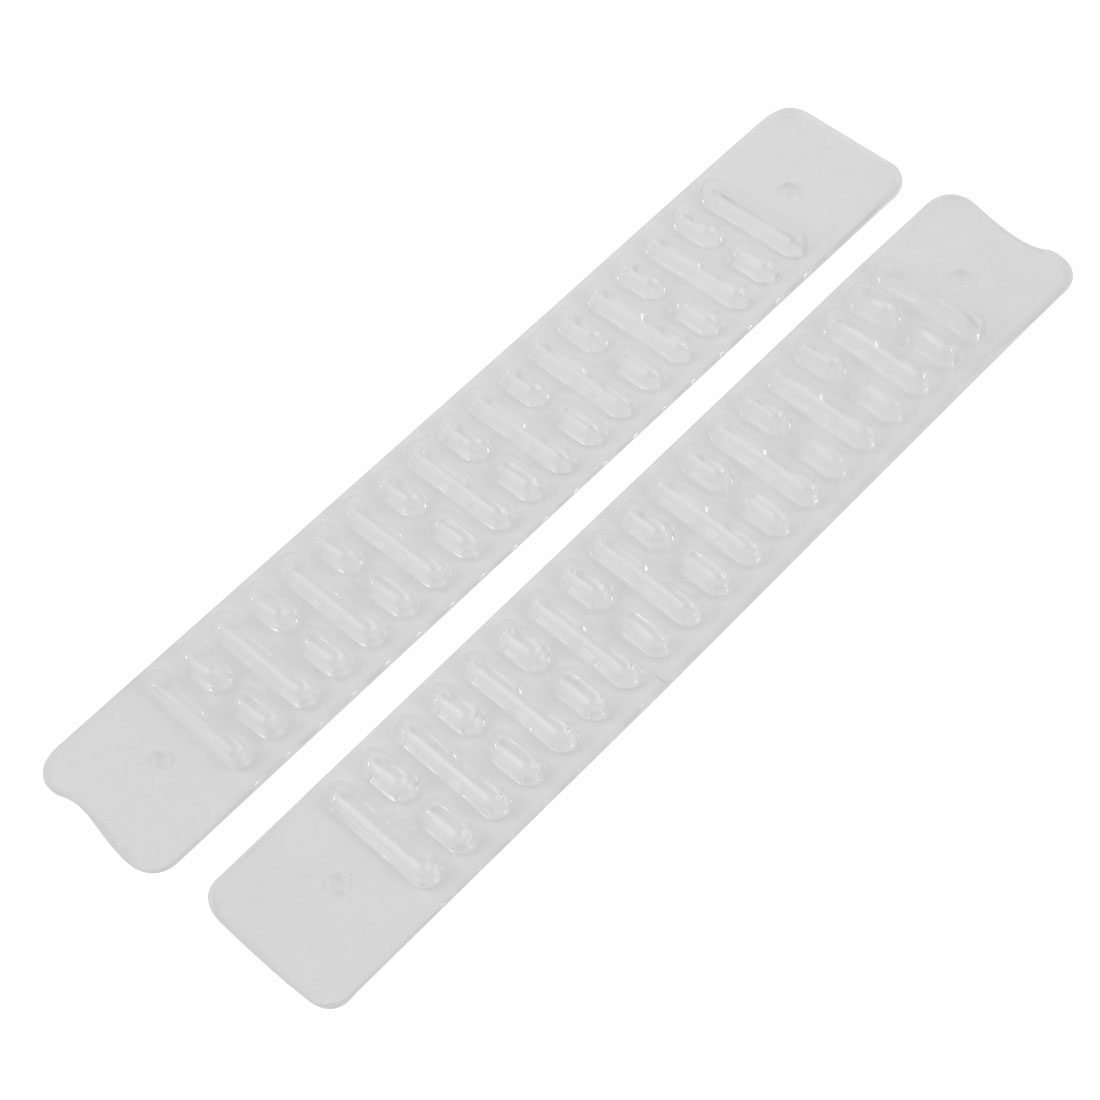 Soft Pair Clear Plastic Wear Preventing Bumping Buffer Desk Corner Guard